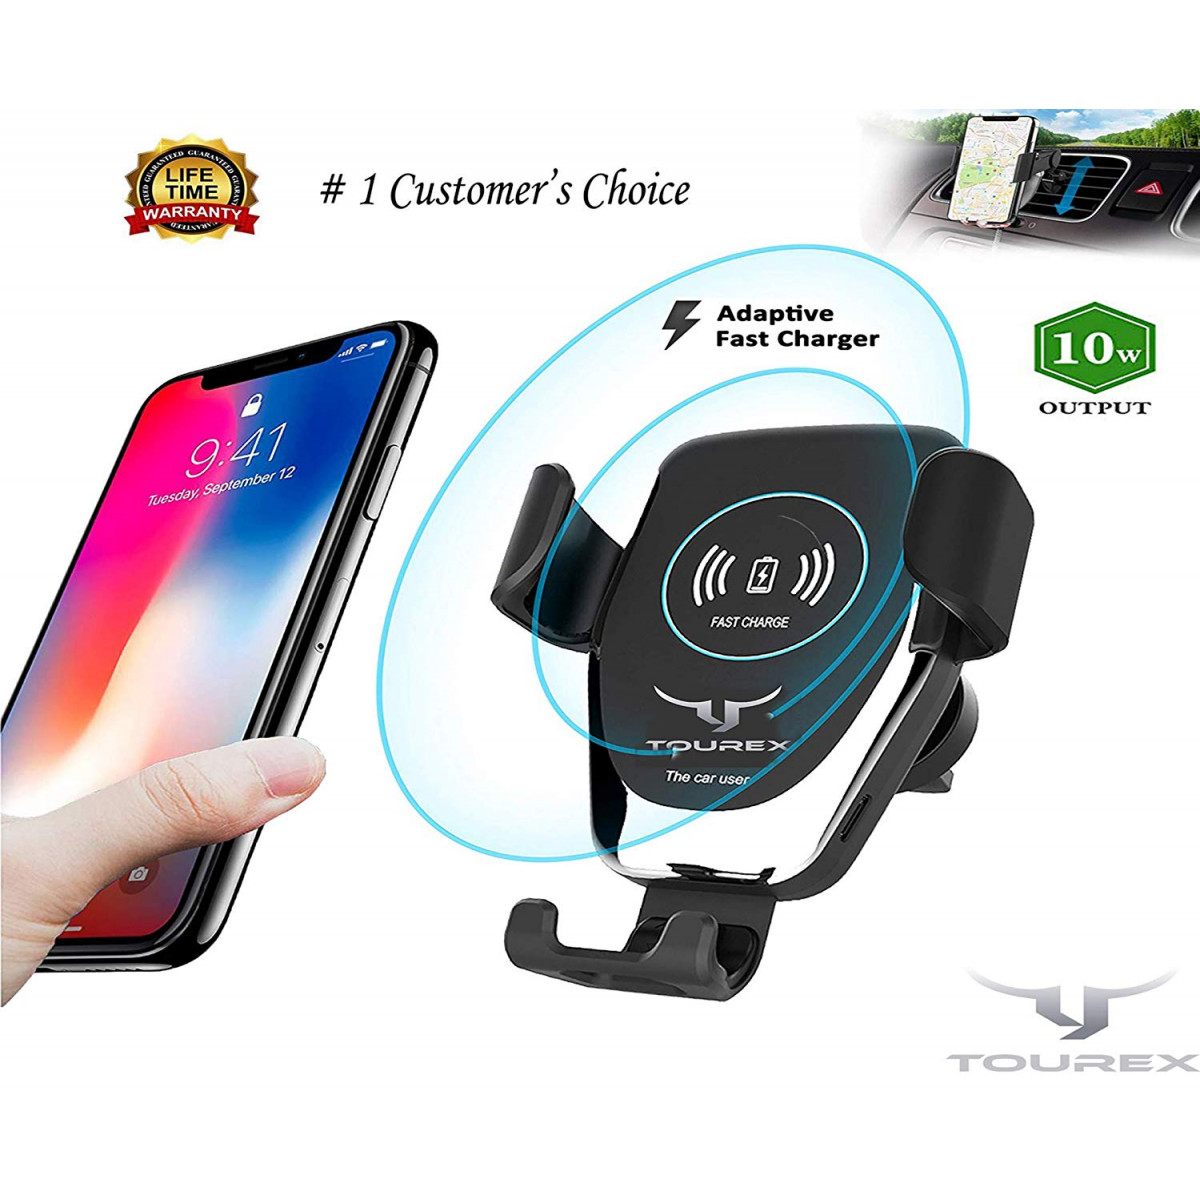 S9+ Air Vent Phone Holder Wireless Car Charger 10W S8+ Note 8 5 Adorve Gravity Wireless Fast Charger Car Mount Wireless Charger fit All Qi Enabled Devices Compatible for iPhone X Samsung Galaxy S9